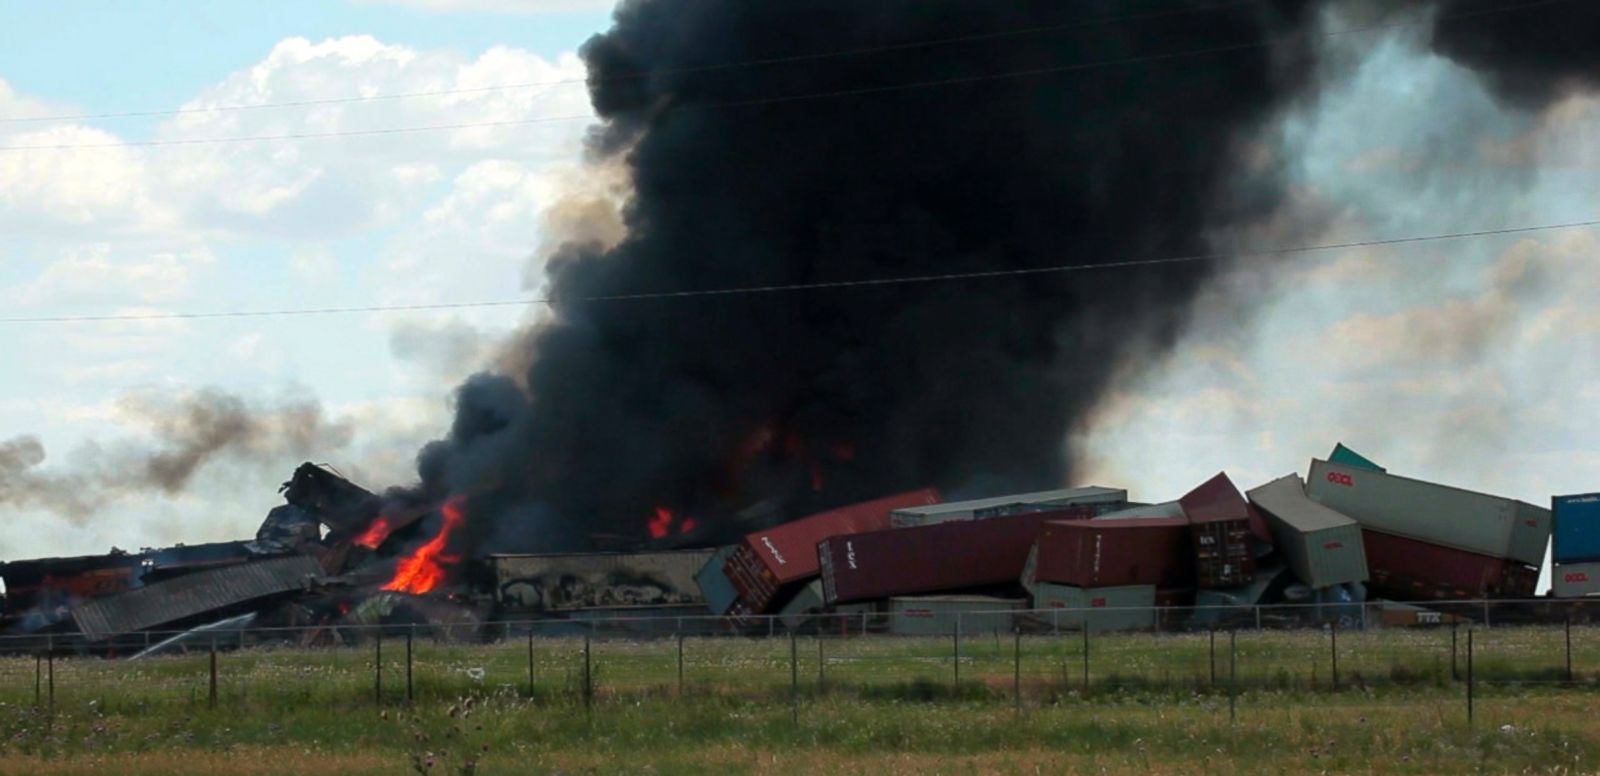 VIDEO: Debris from the head-on train collision spreads across an area the size of four football fields.